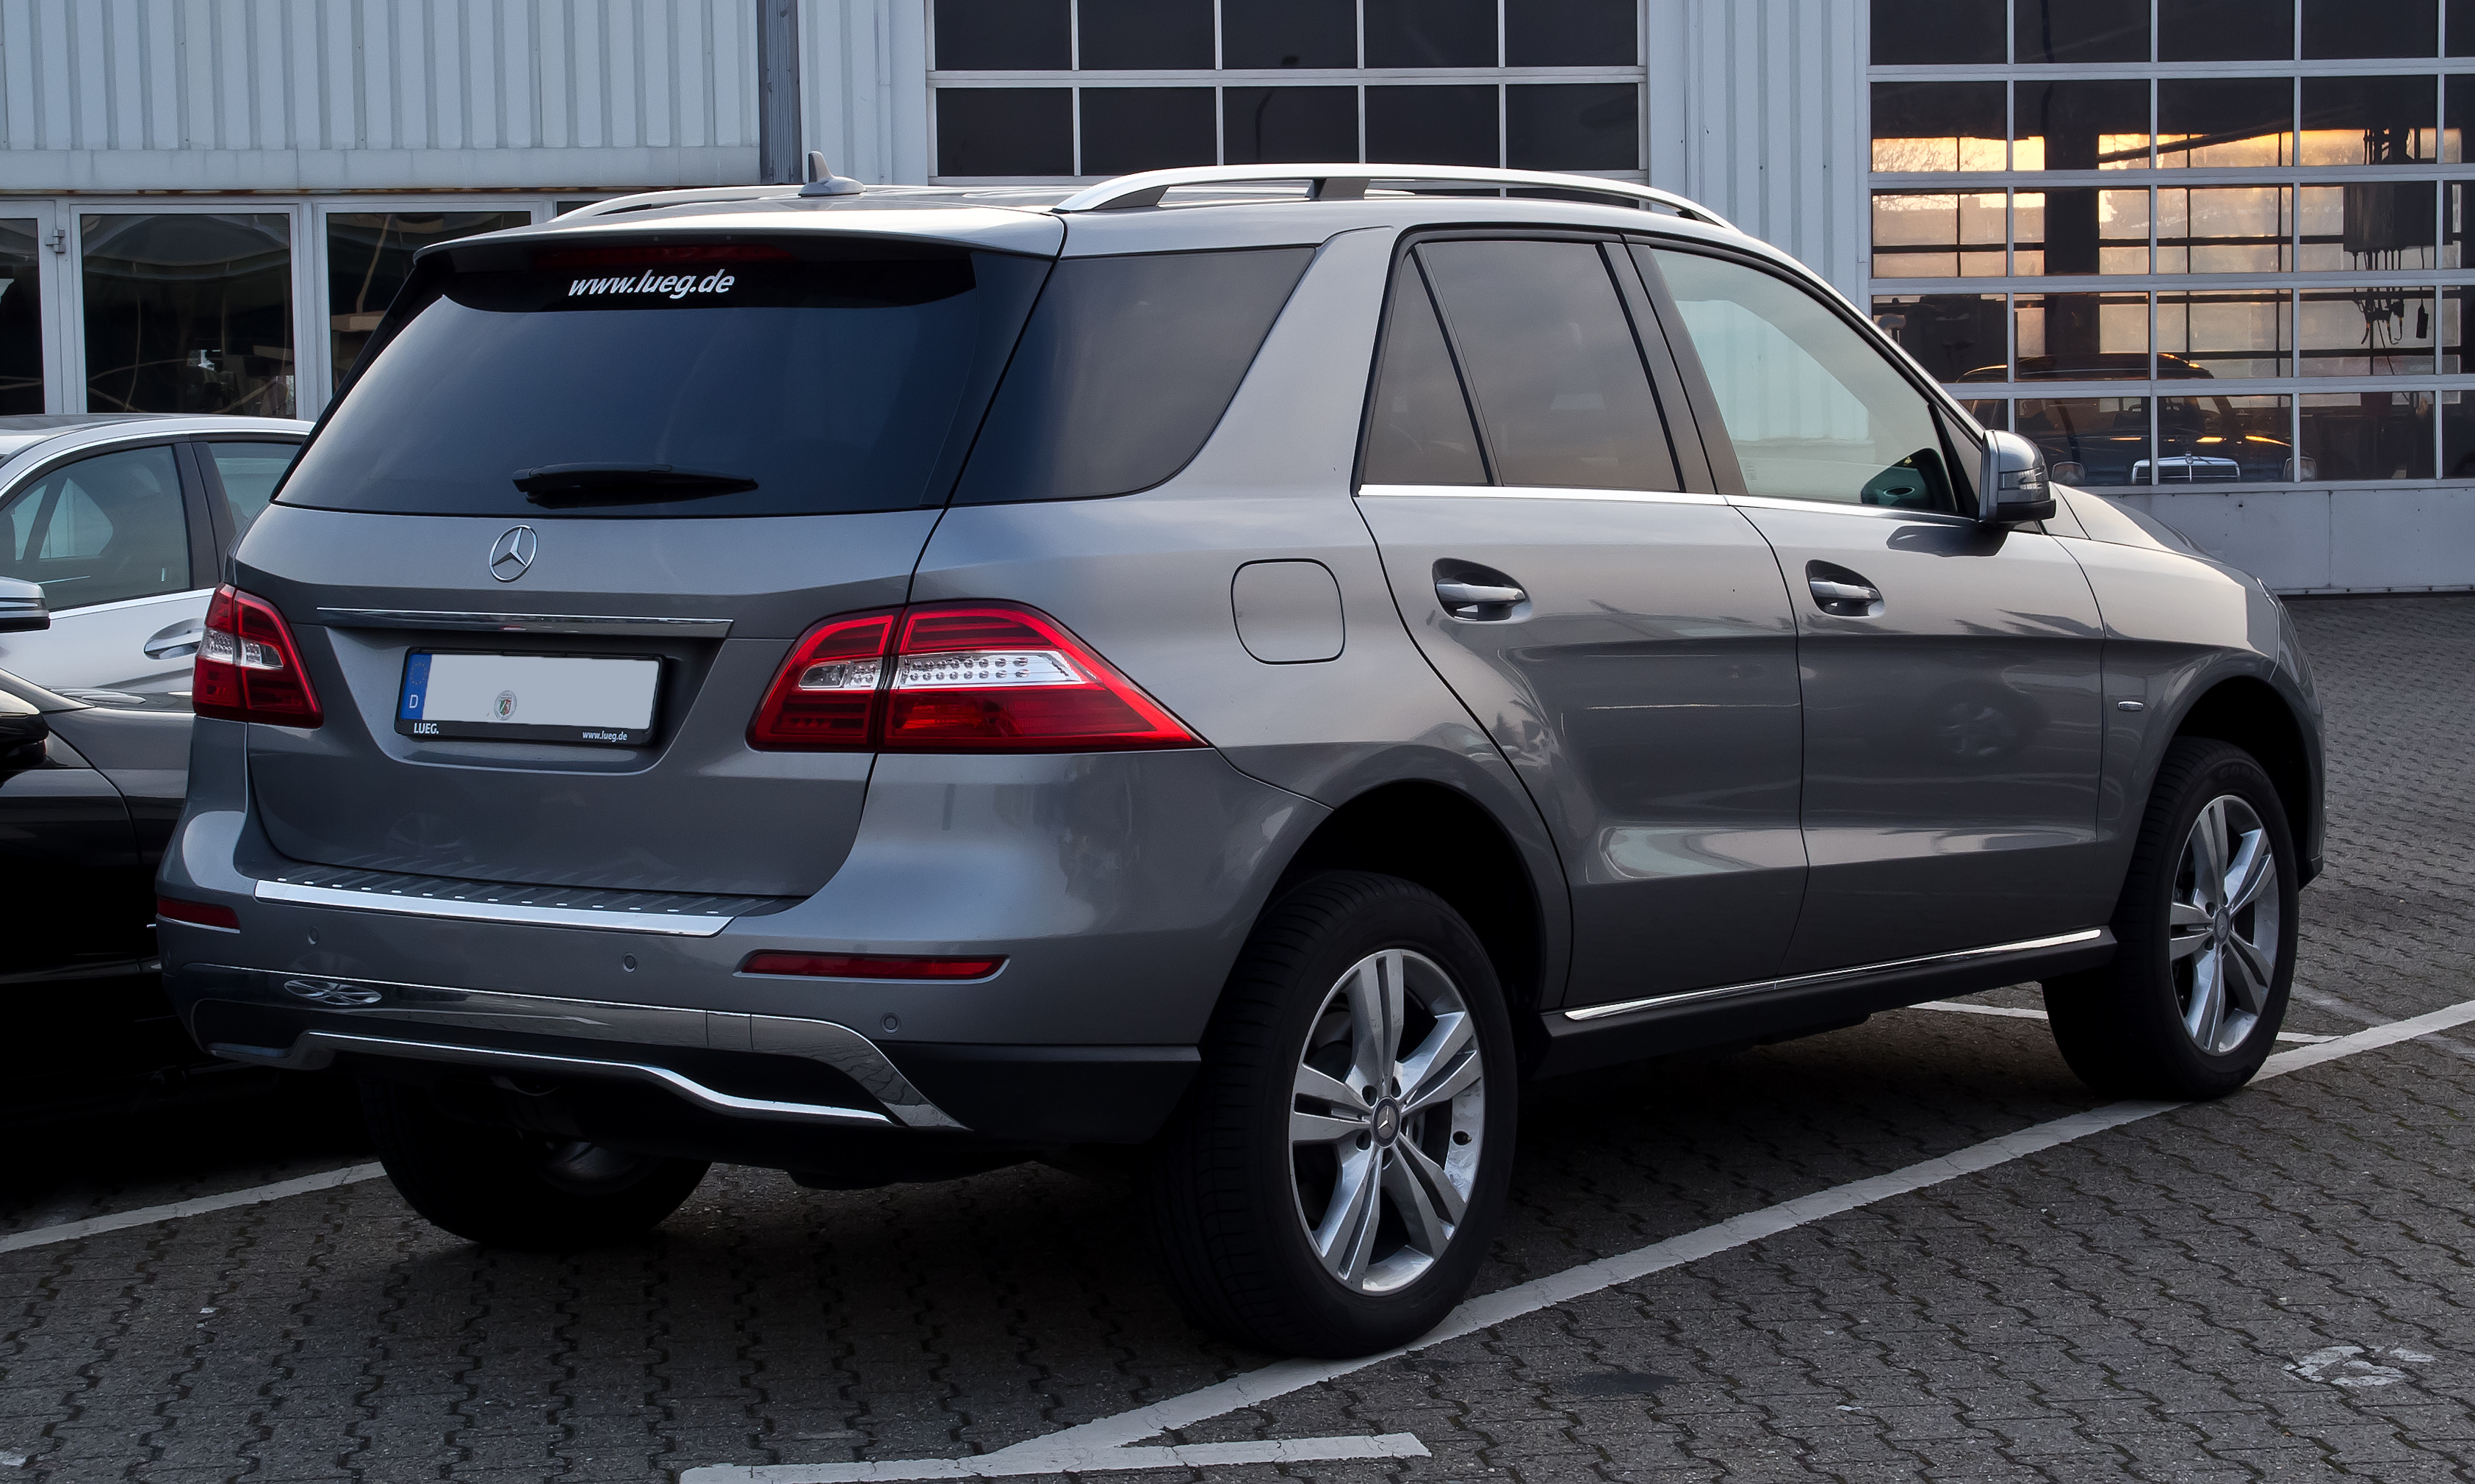 Mercedes ml 250 bluetec bing images for Mercedes benz search